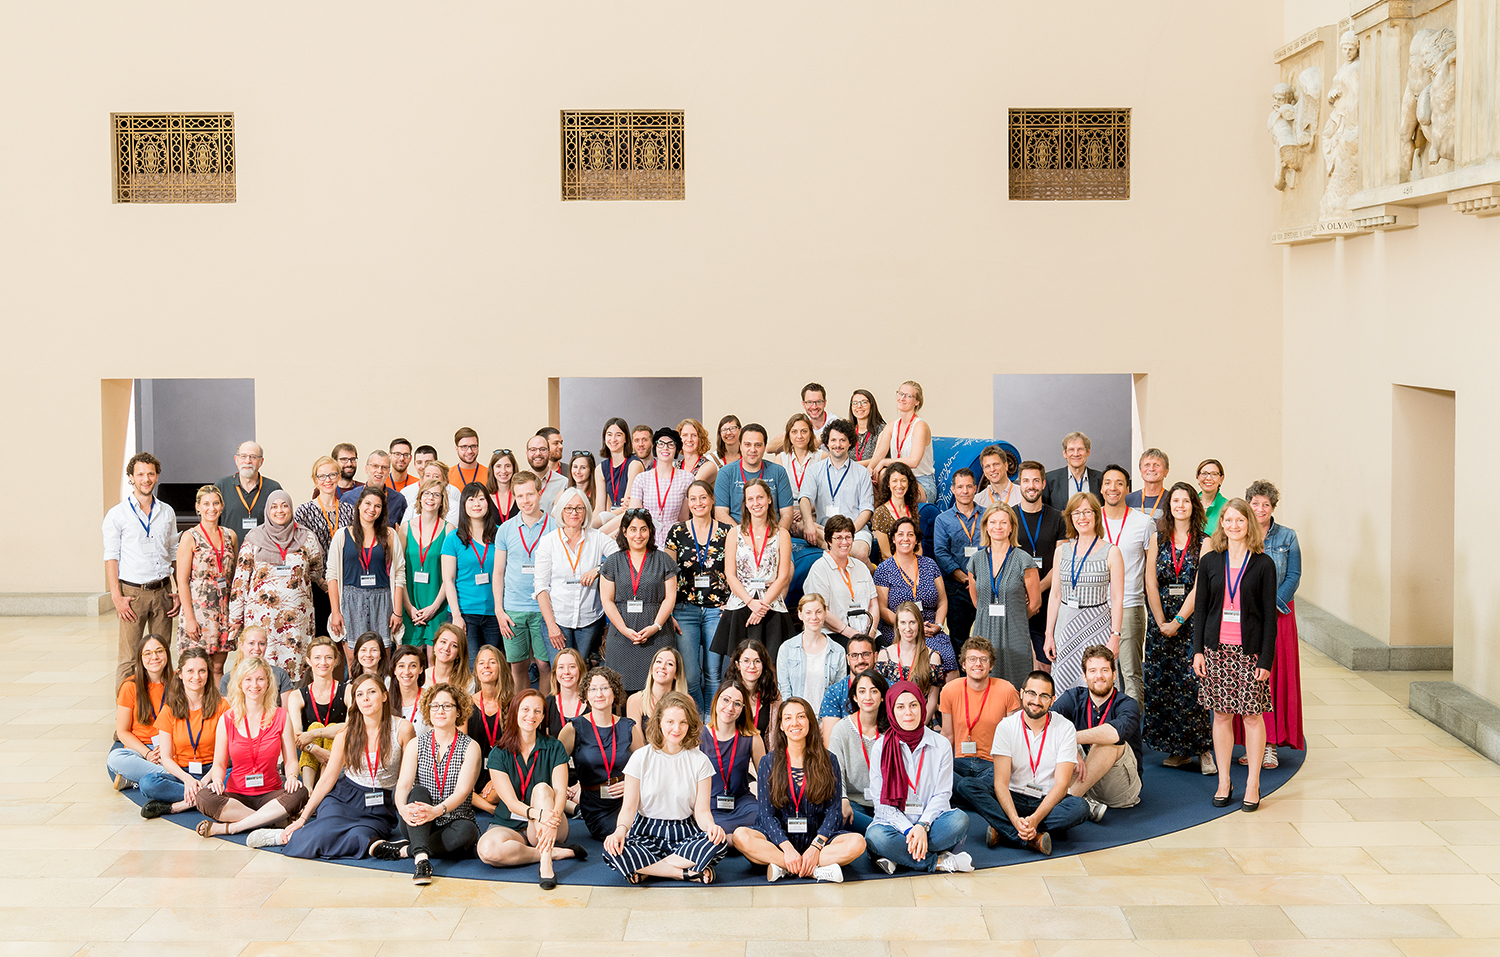 EASP Summer School 2018 (Zürich, Switzerland)